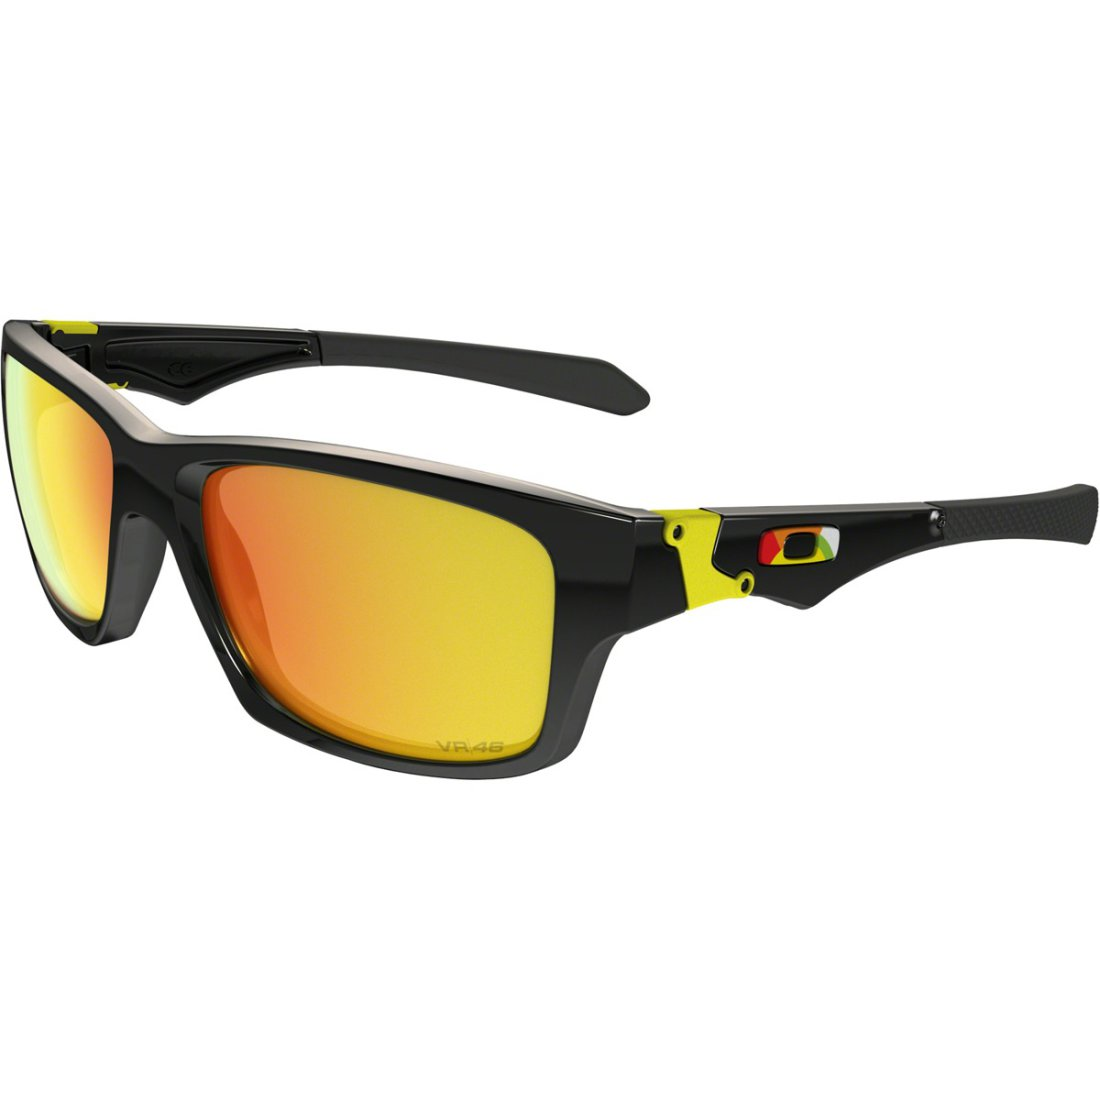 Polished Black Rossi Soleil Valentino Fire Iridium Exclusive De Collection Jupiter Squared Oakley Lunettes jpGLVMzqUS